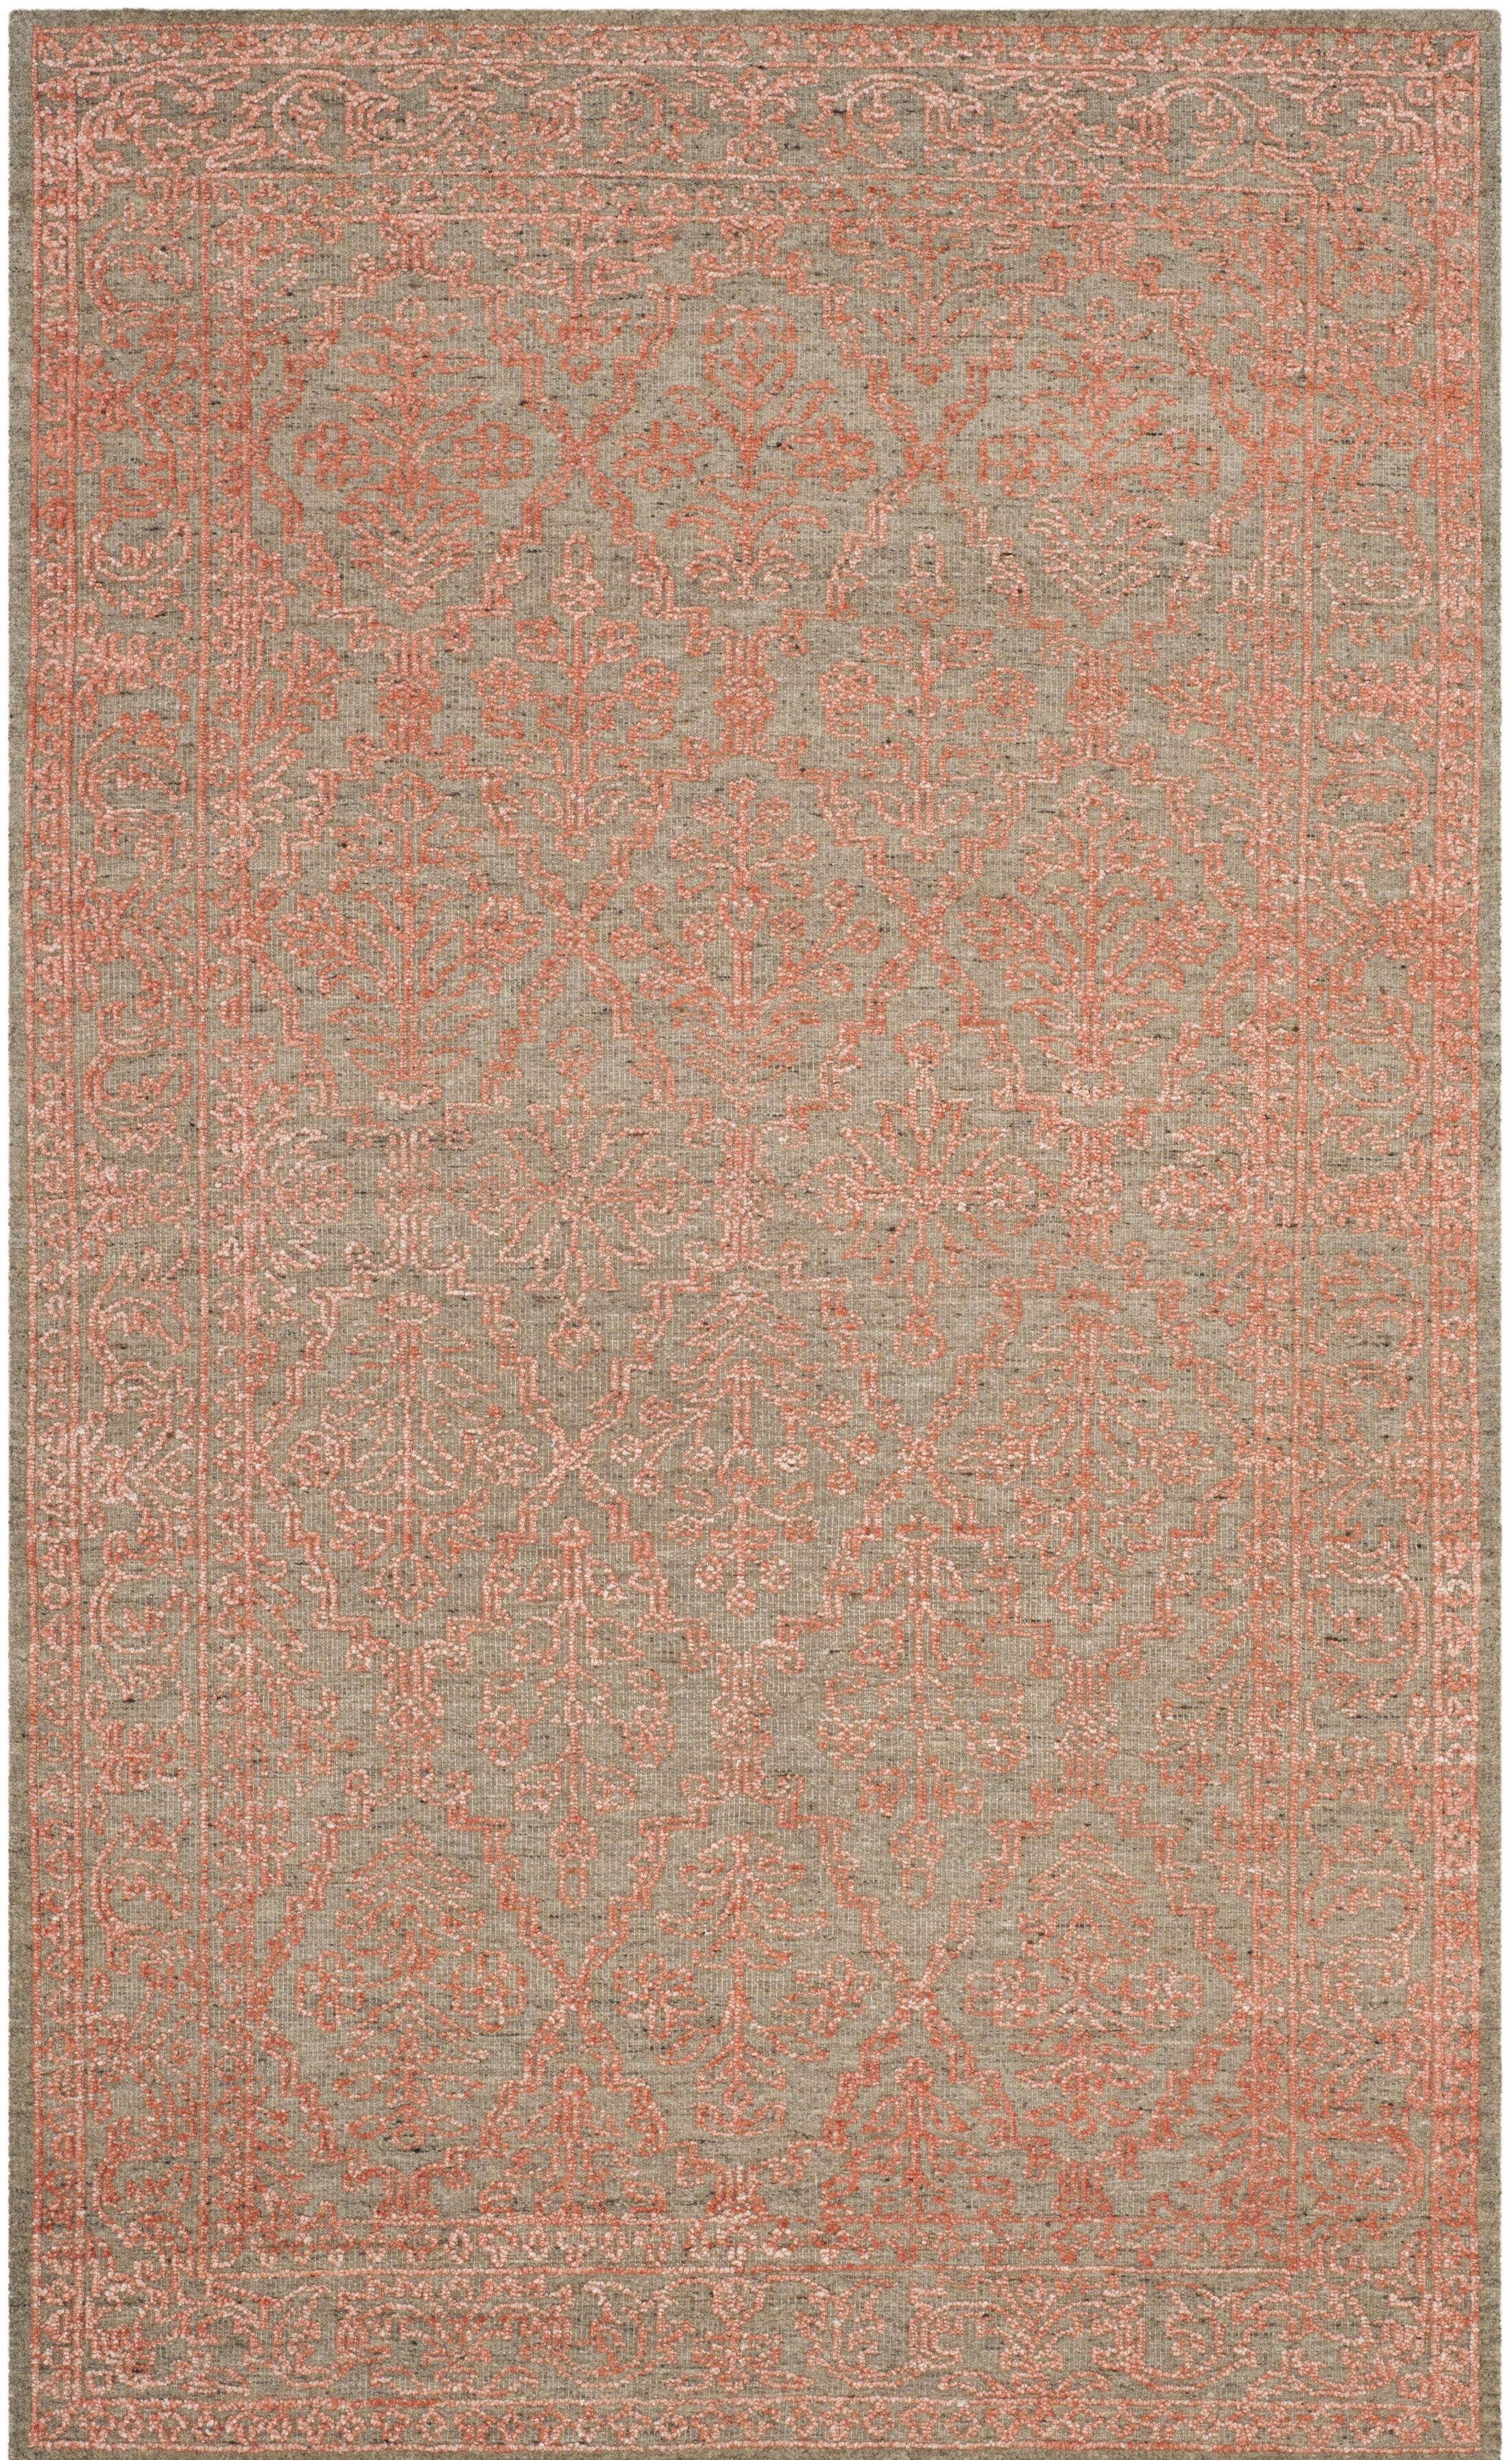 Lahcen Hand-Knotted Gray/Orange Area Rug Rug Size: Rectangle 6' x 9'